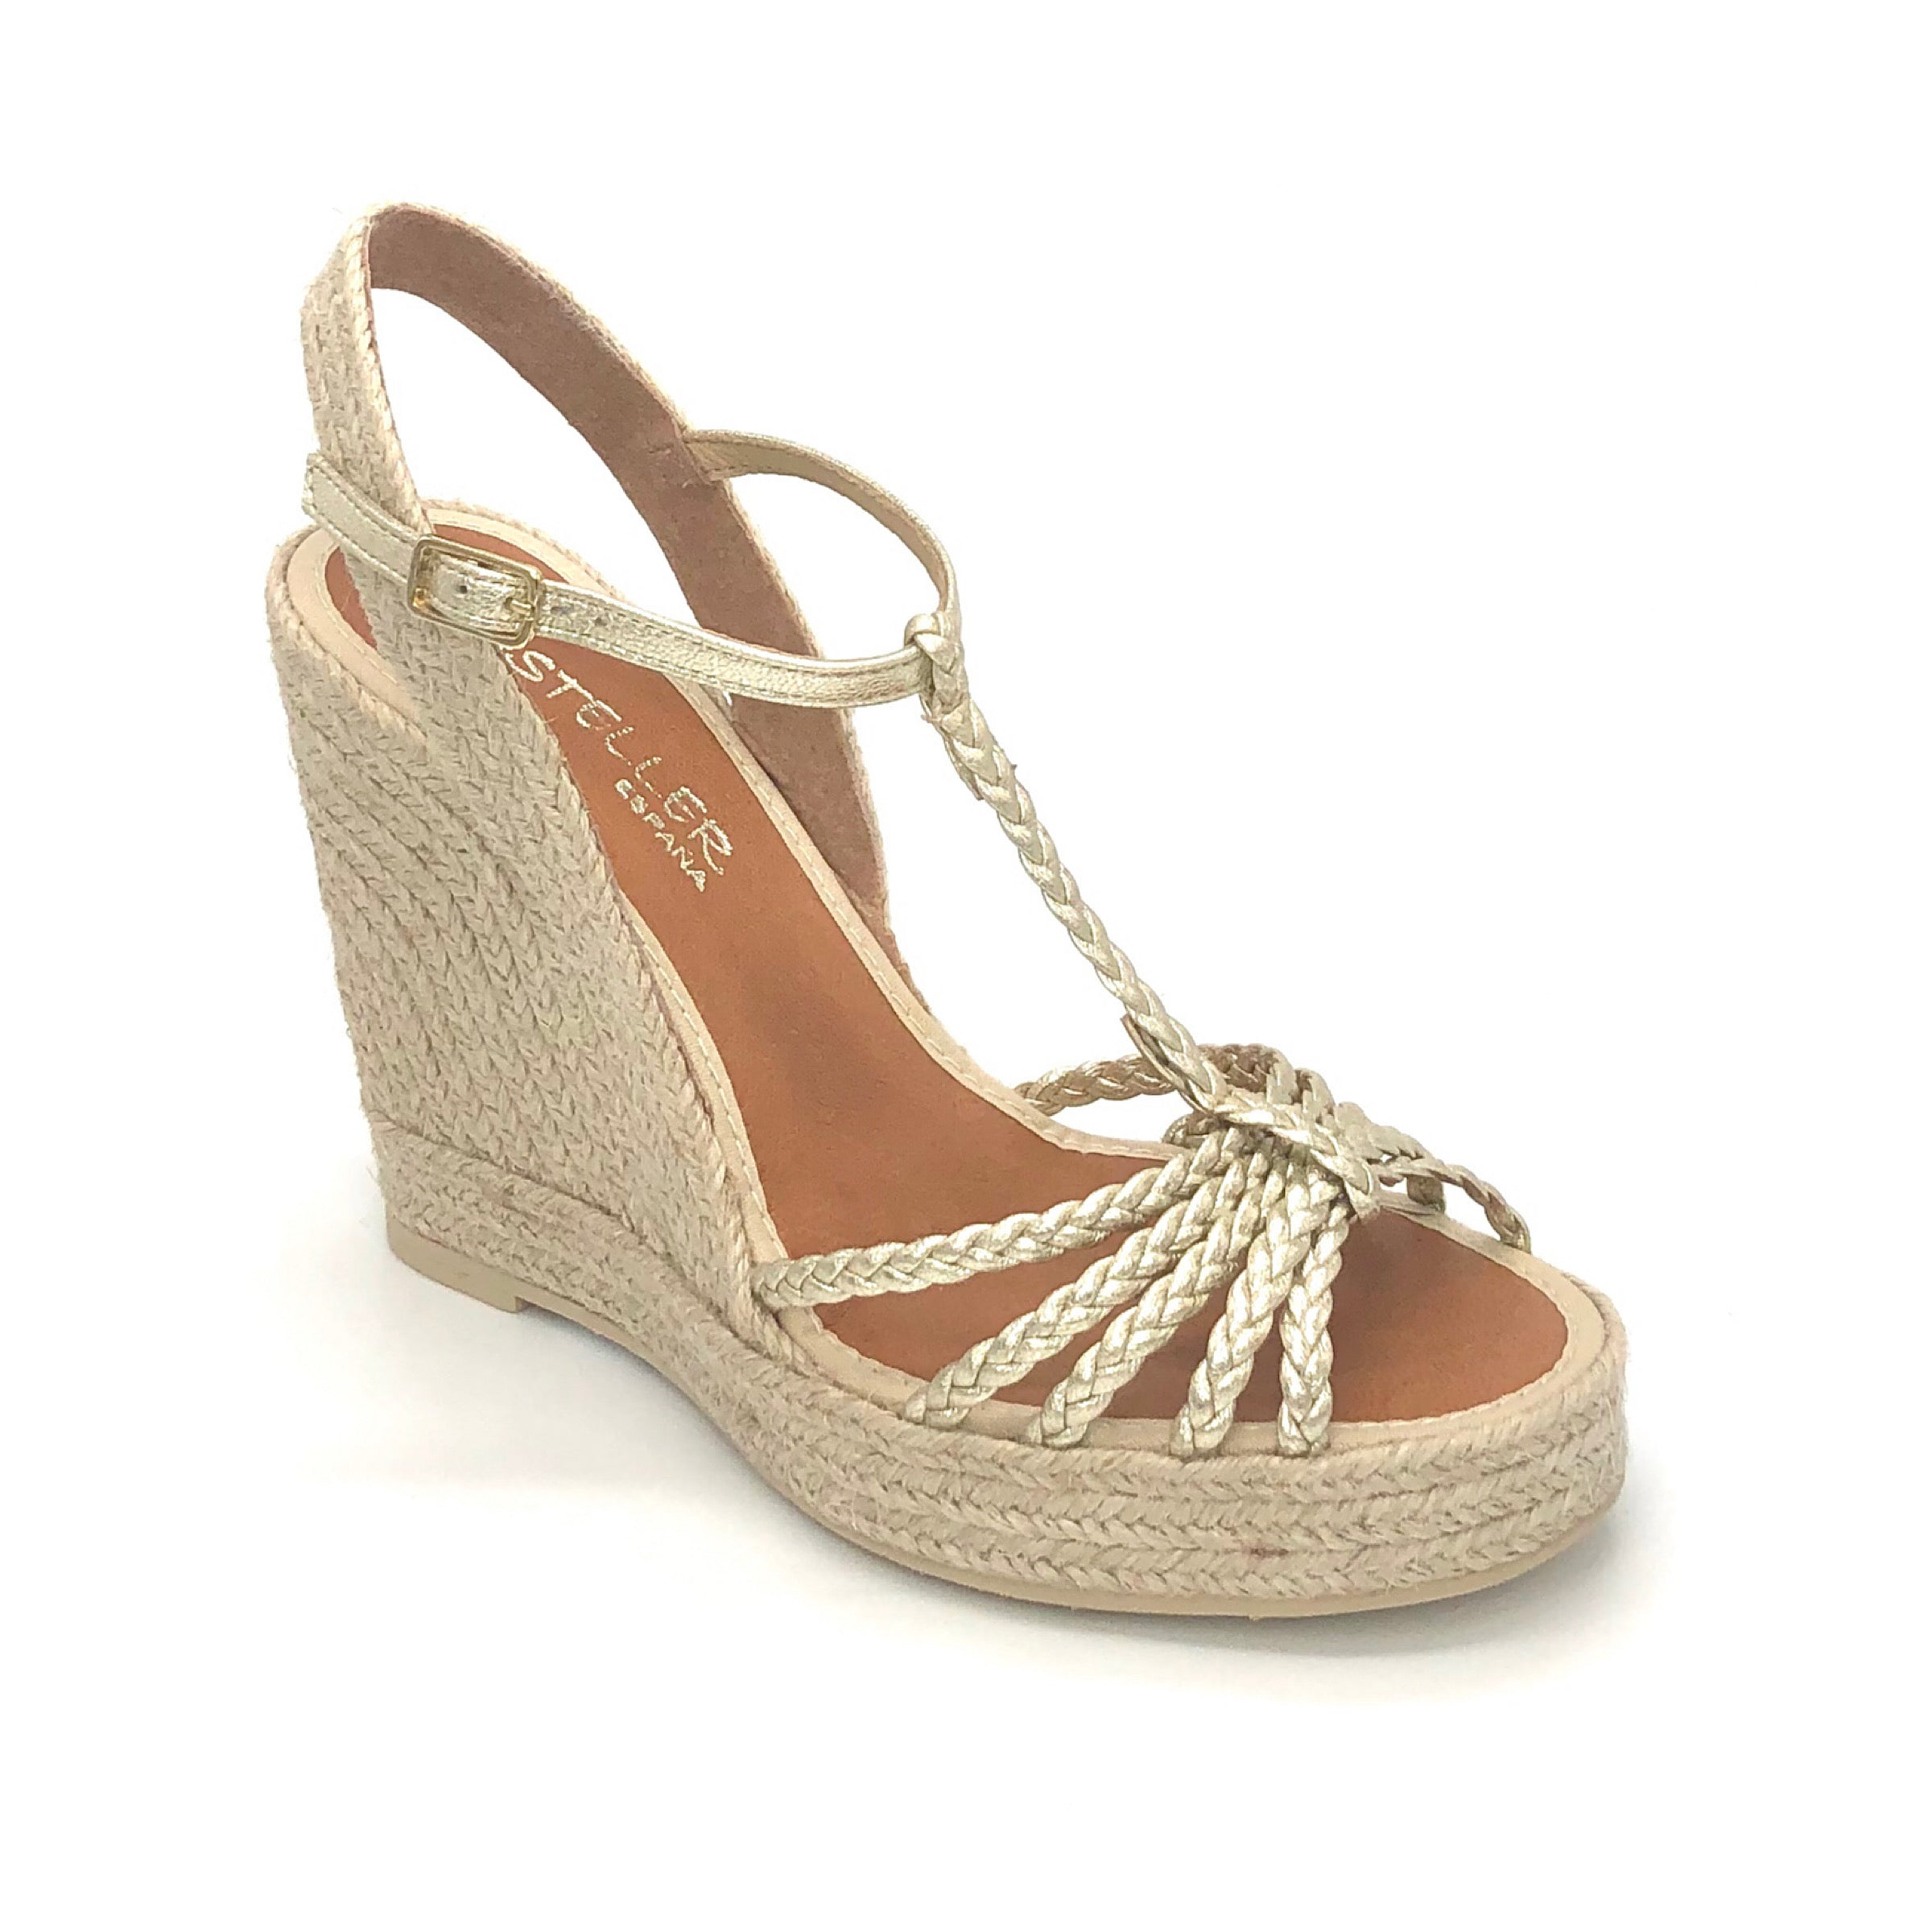 The Braided T-Strap Espadrille in Platino Metallic